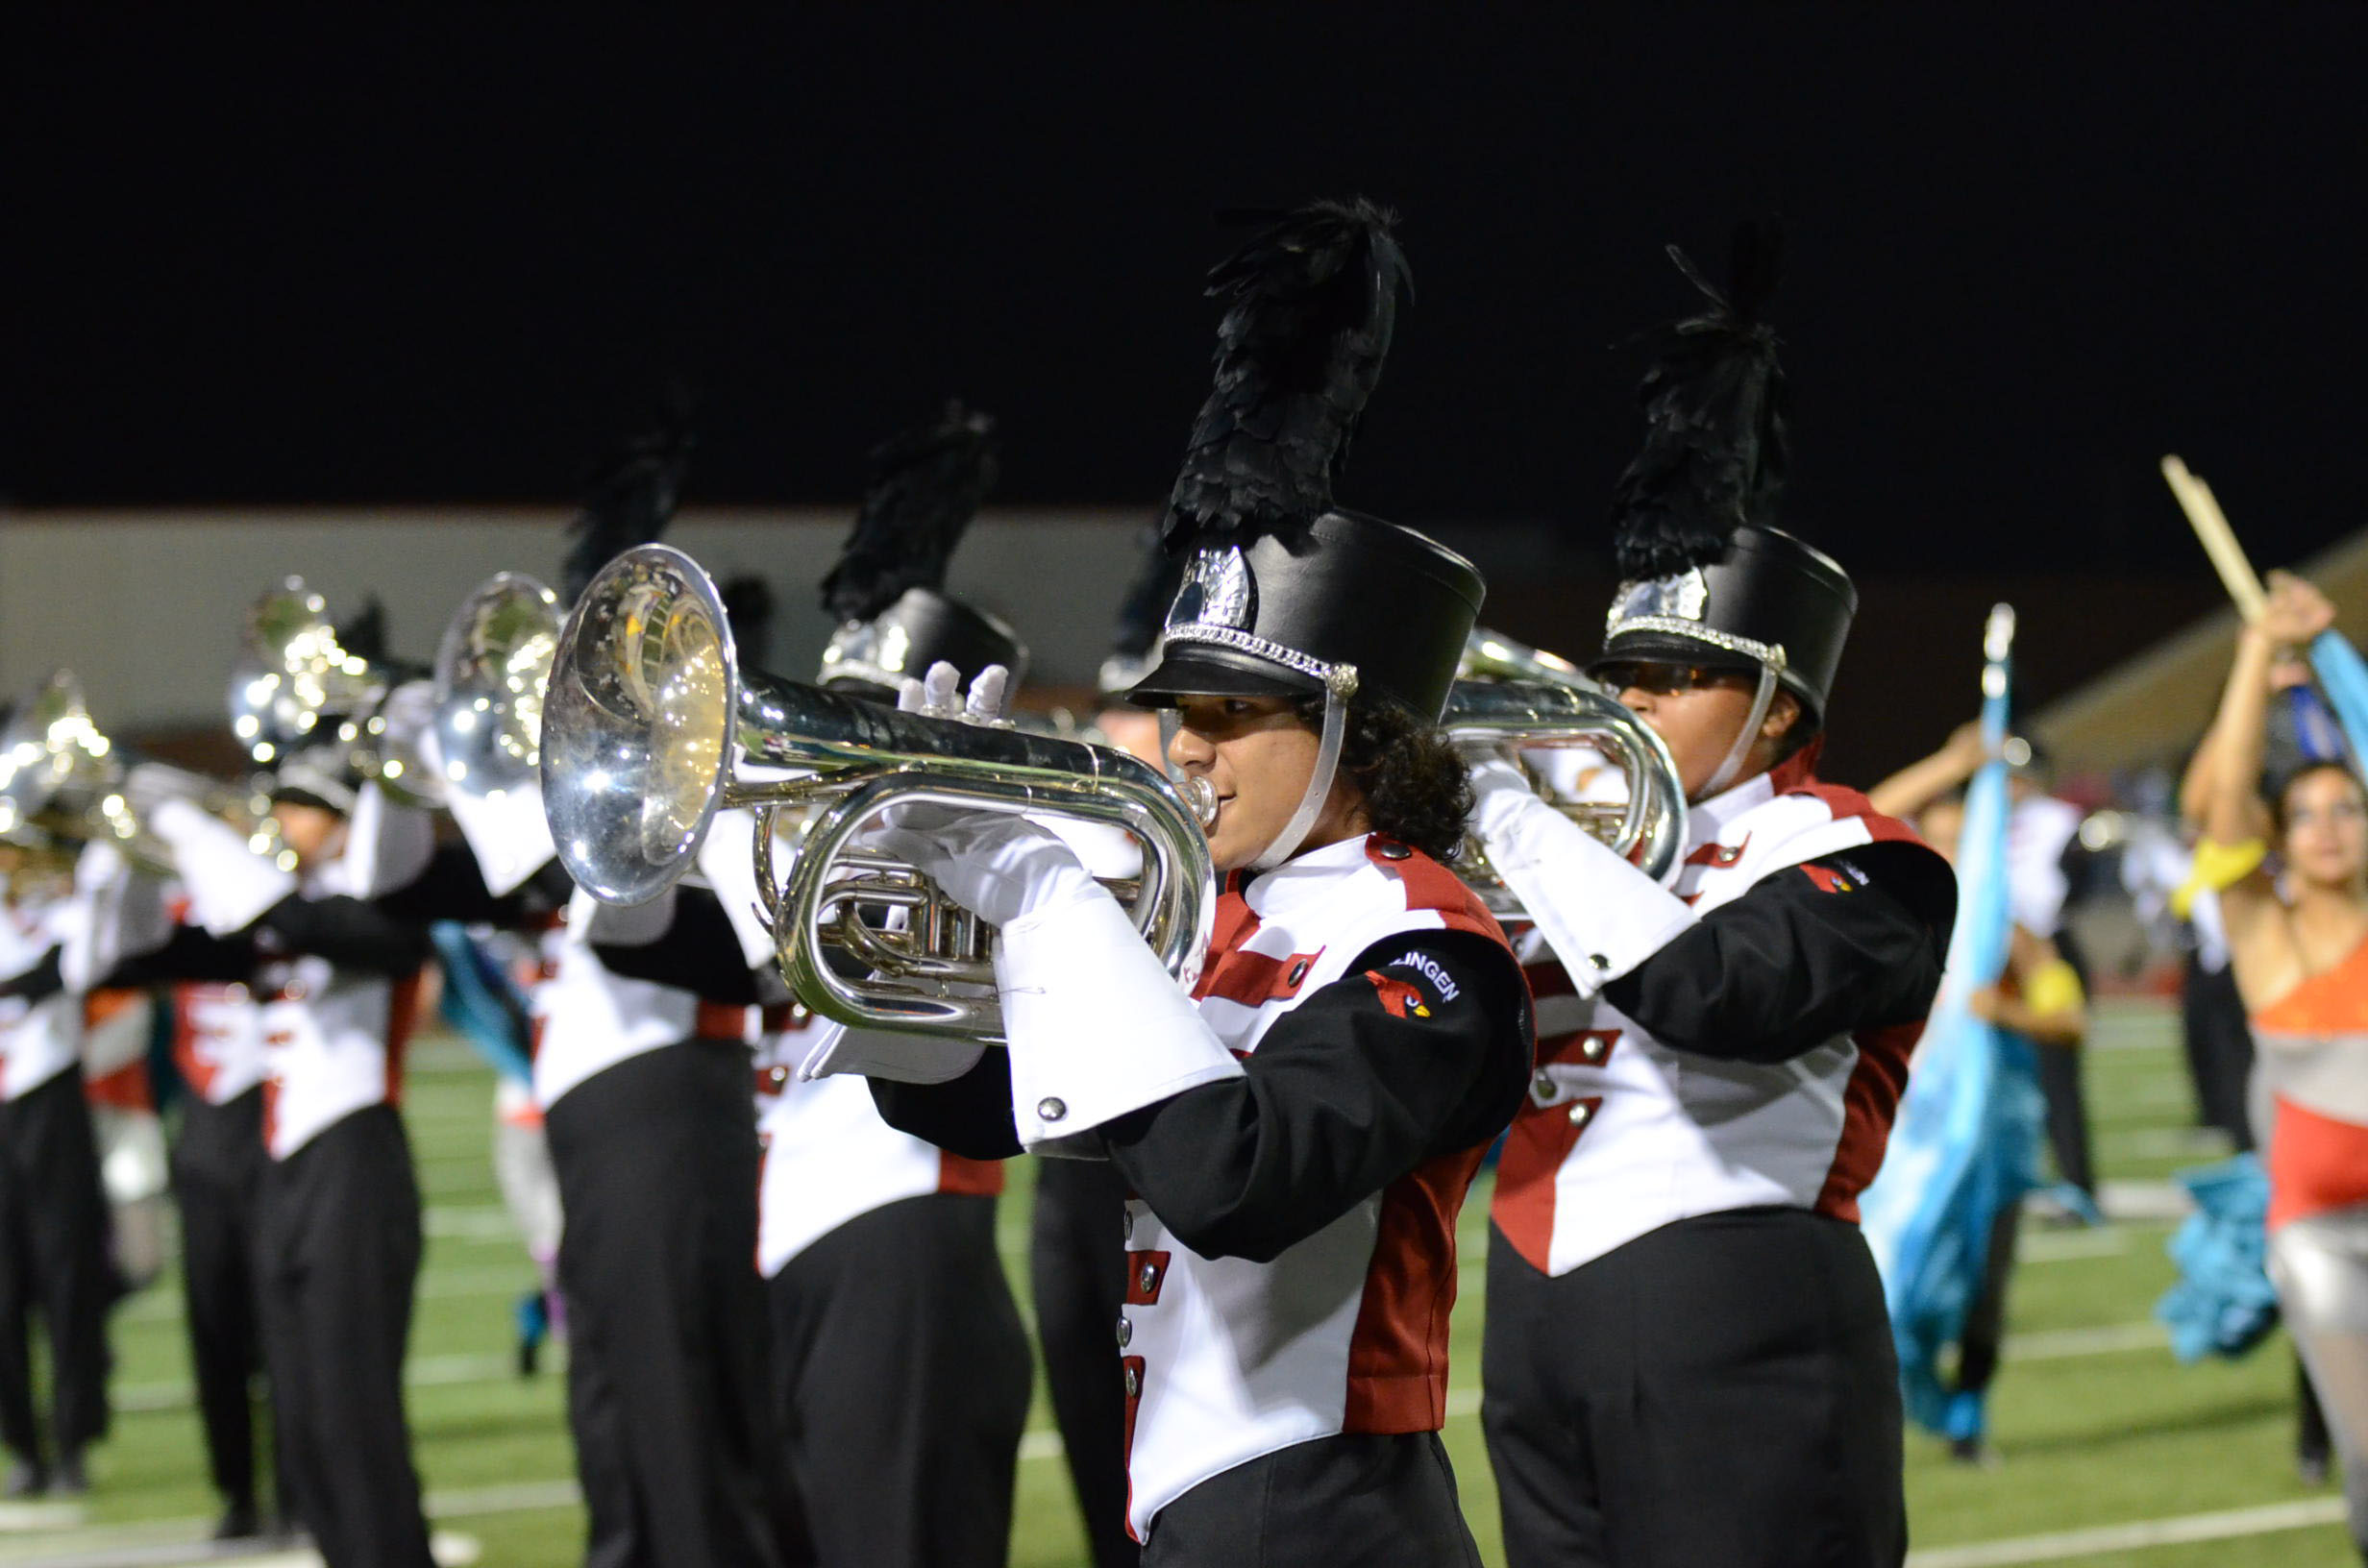 High School marching bands stay on key at RGV music competition